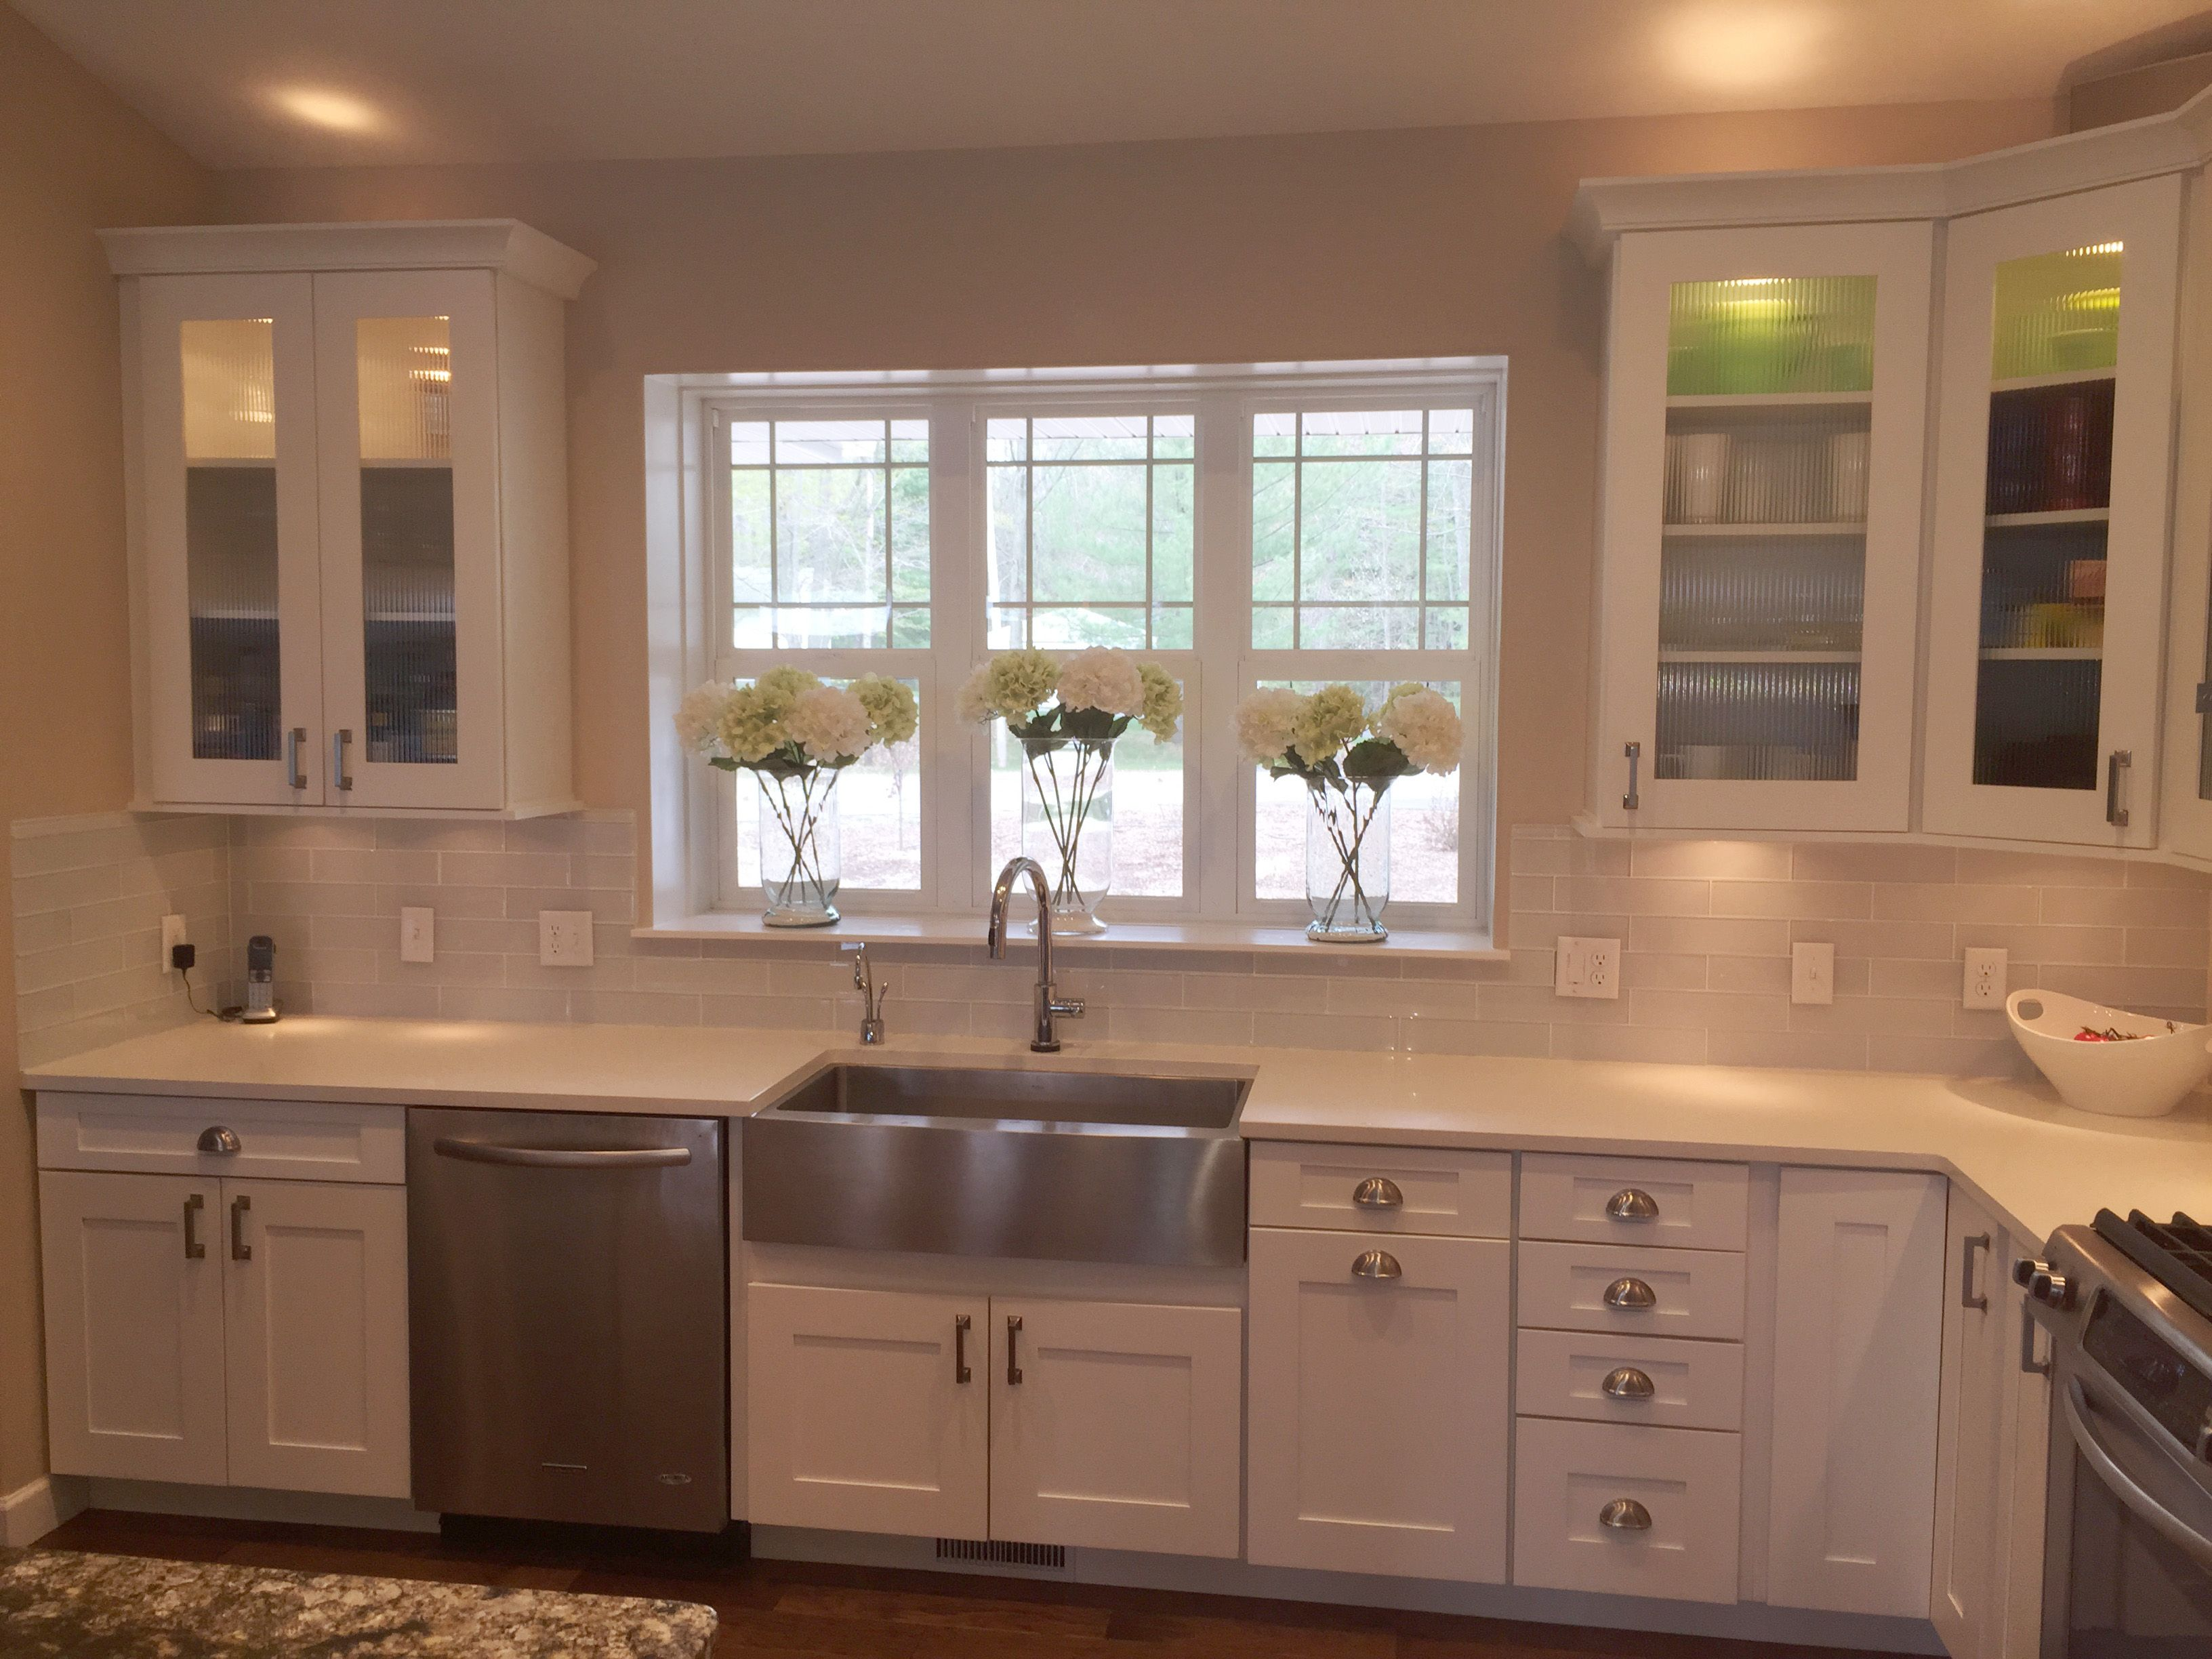 Merveilleux White Shaker Style Kitchen Cabinets With Hickory Hardware Studio Pulls  (P3010 SN) And